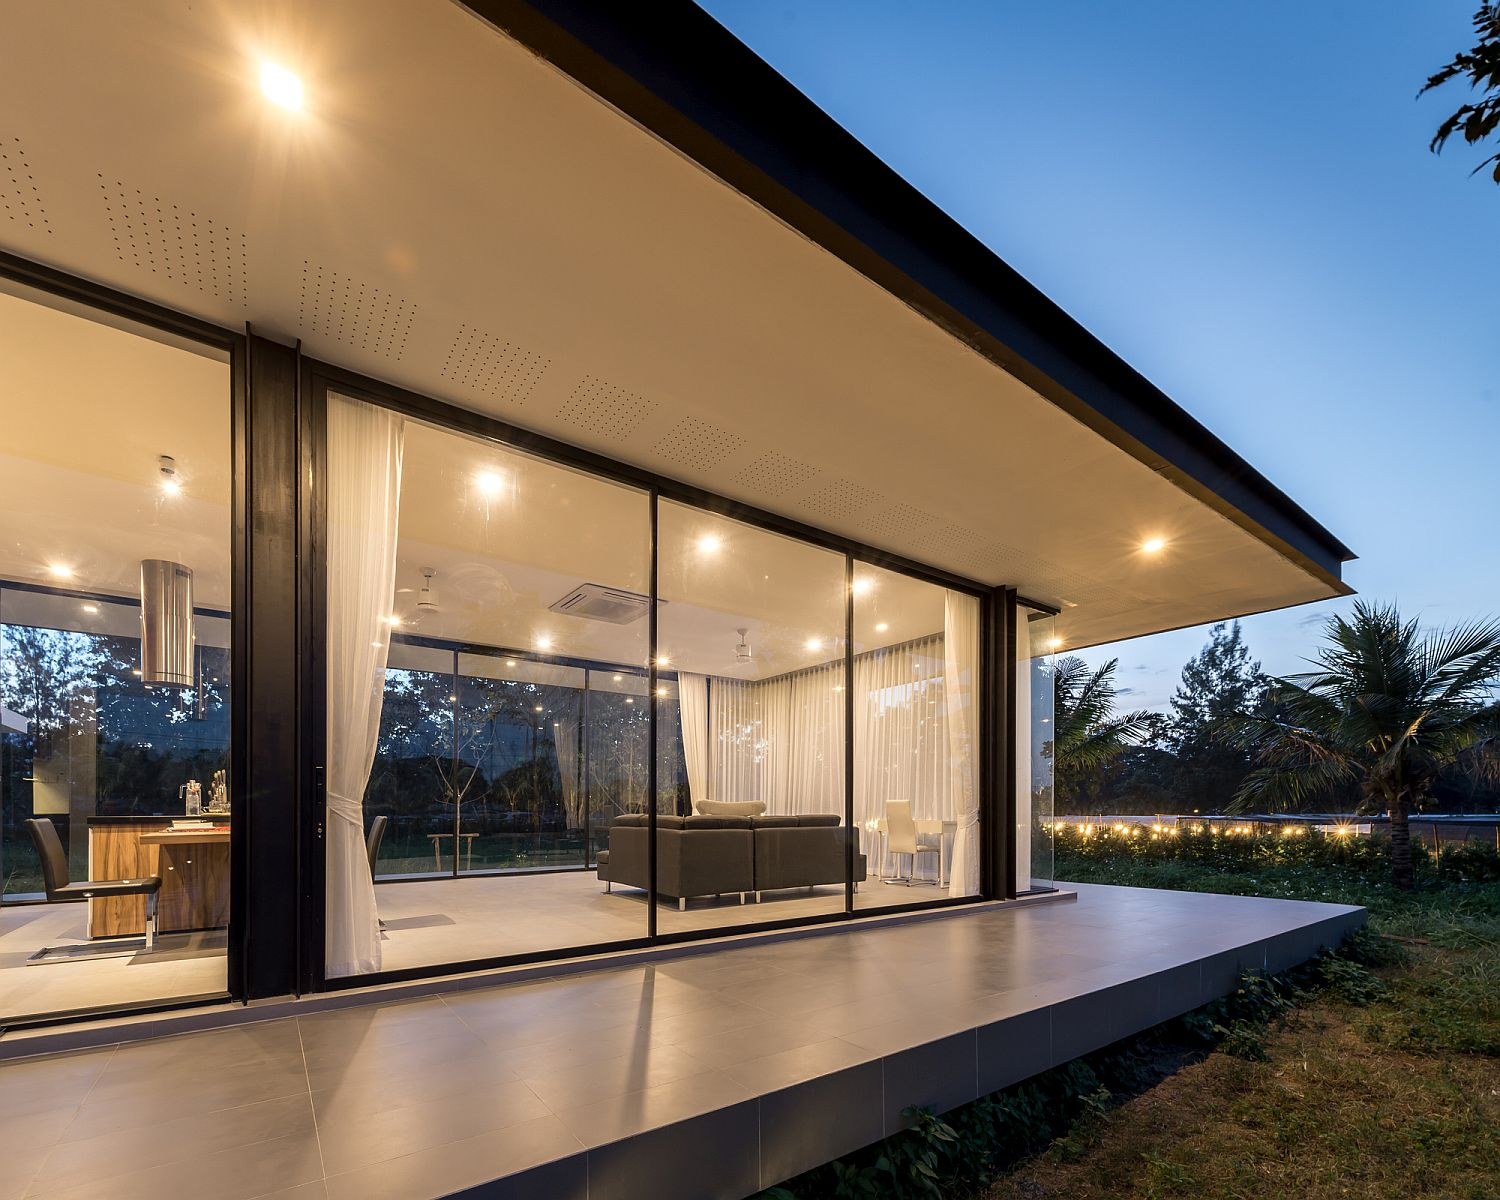 Walls-of-glass-connect-the-interior-with-the-scenery-outside